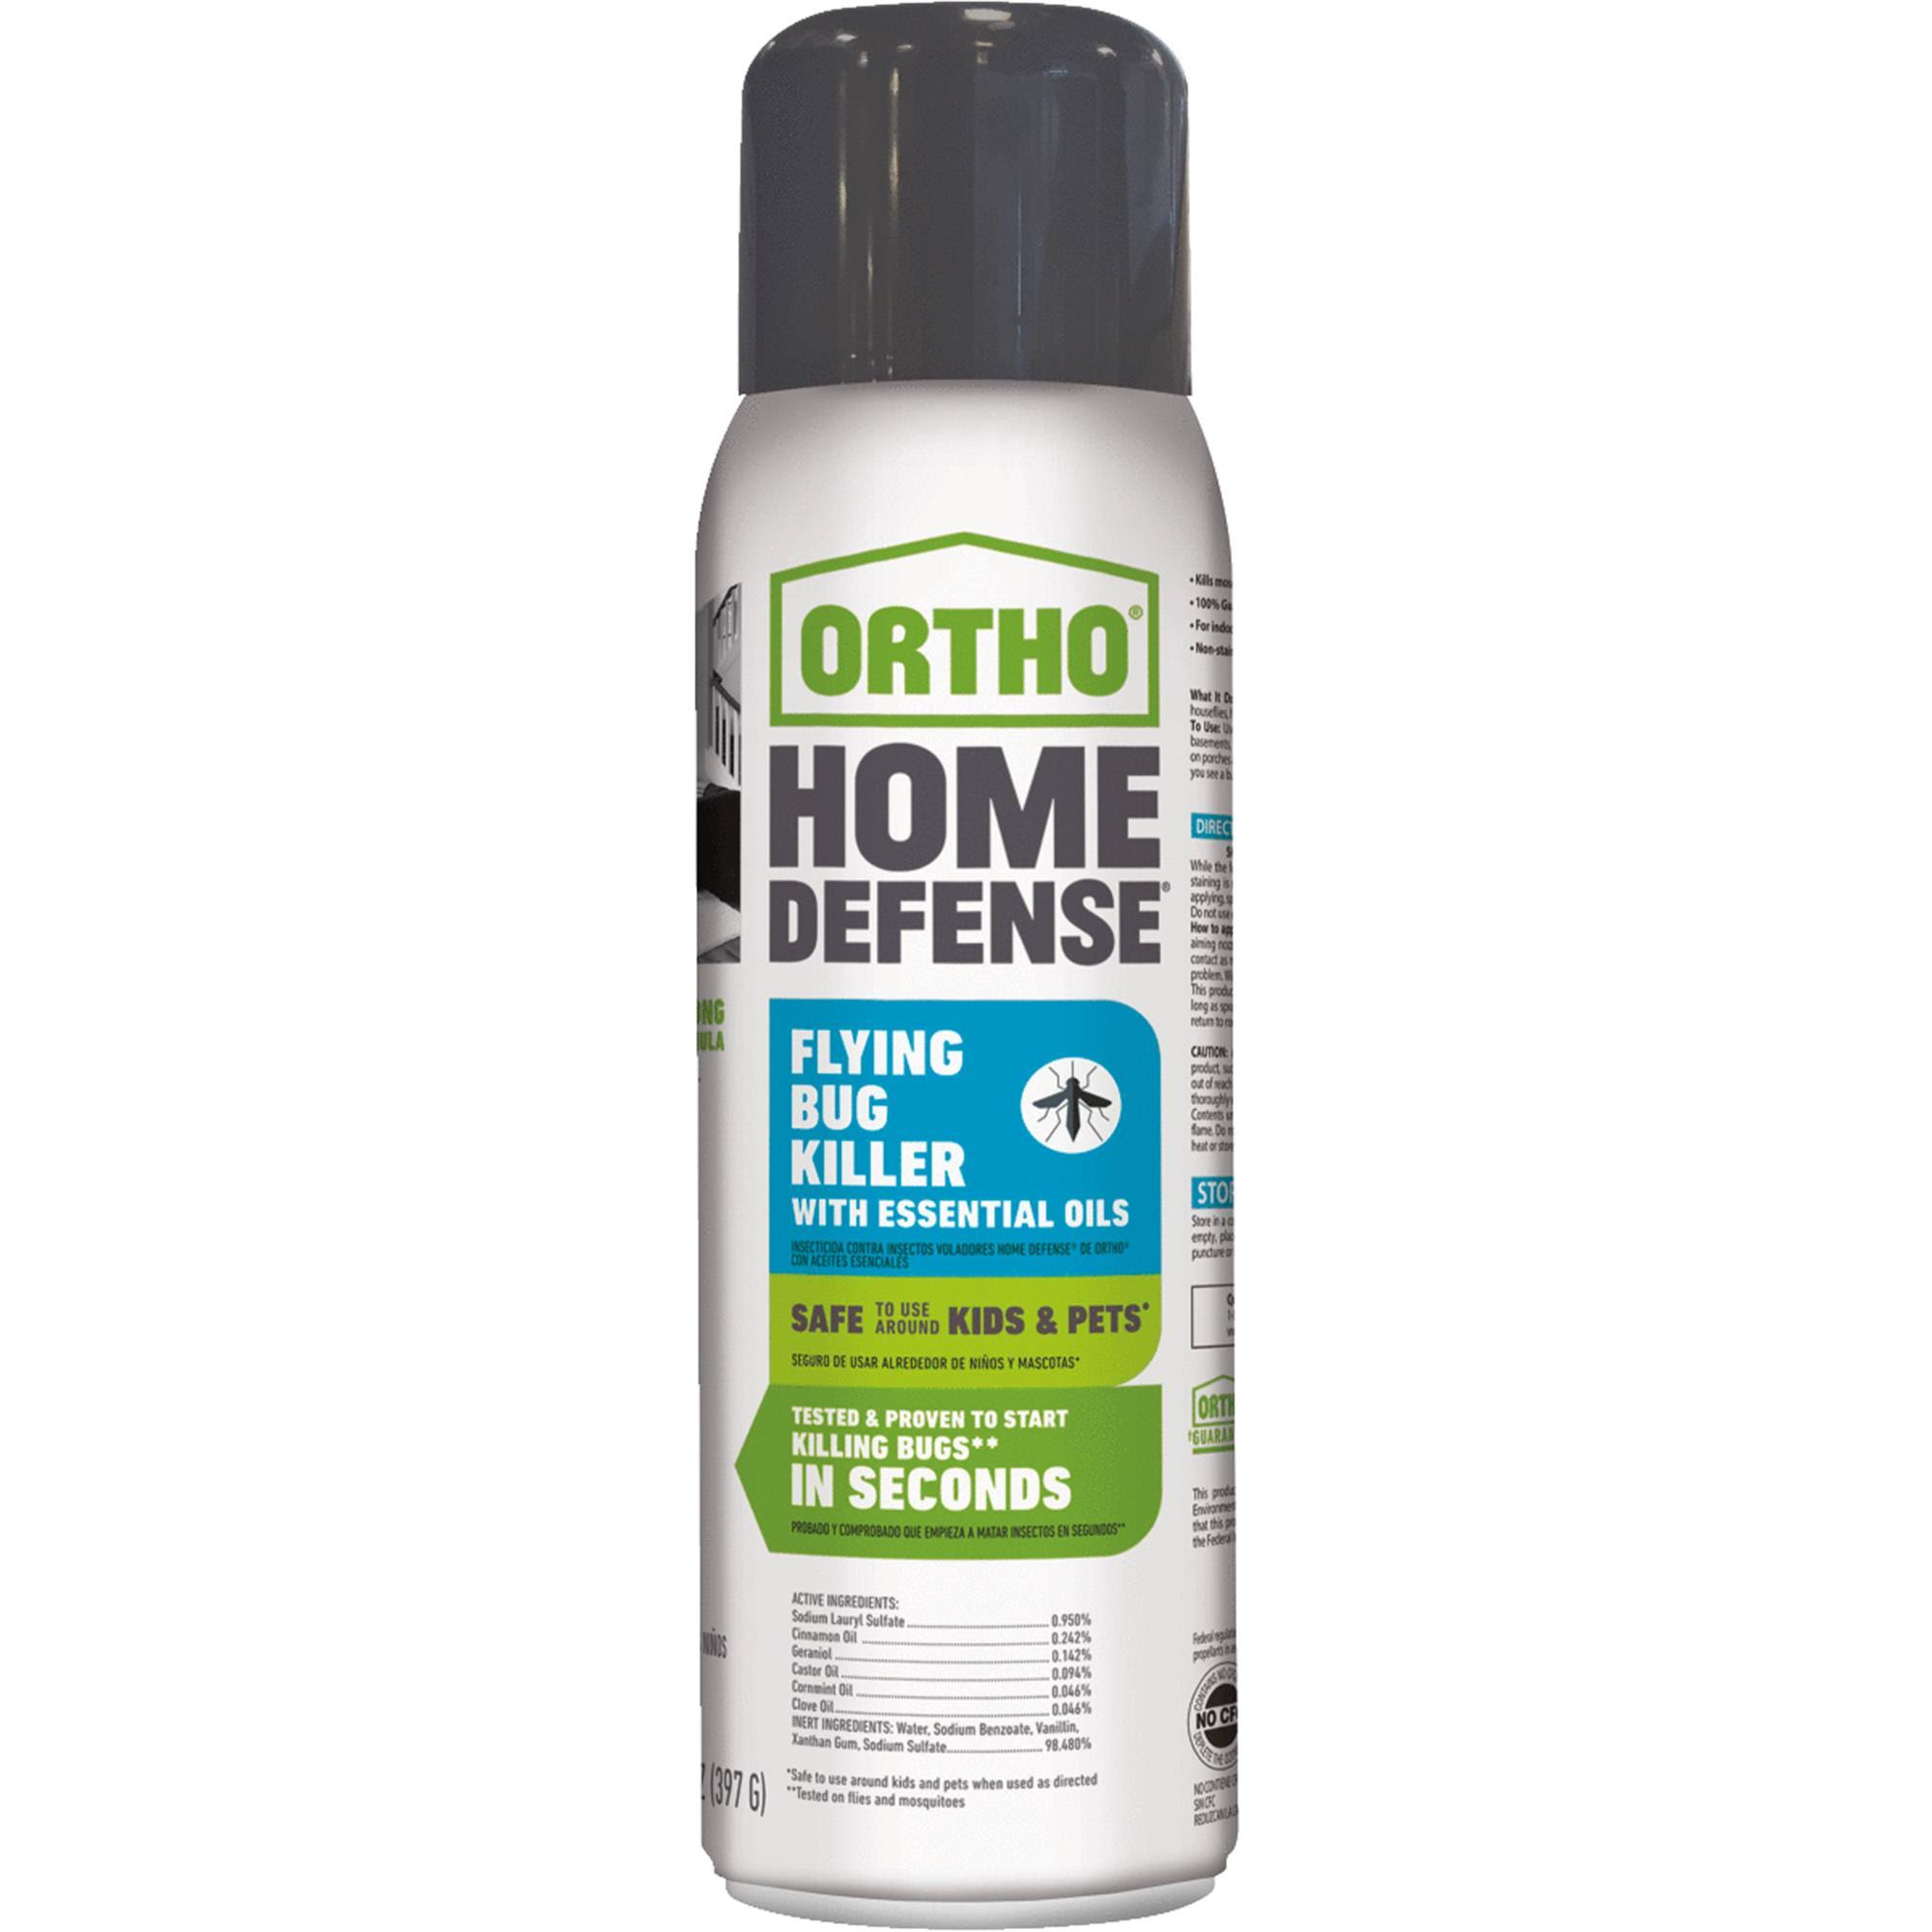 Ortho Home Defense Flying Bug Killer - with Essential Oils, 14oz